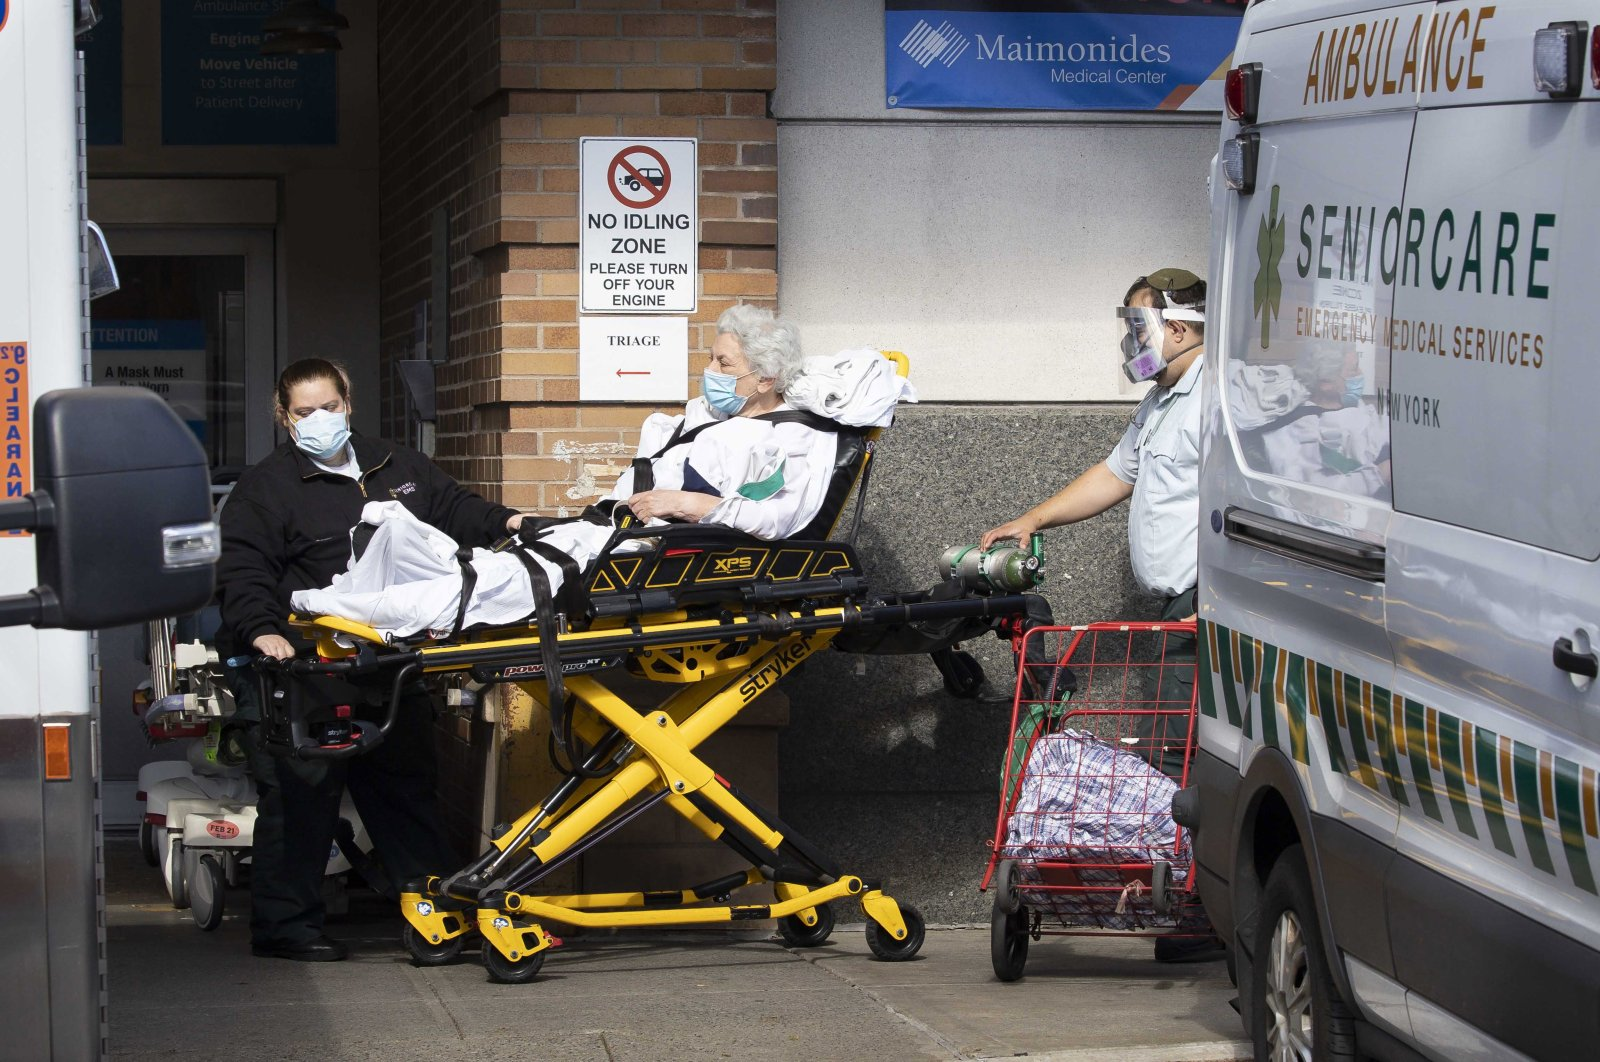 A person is brought into an emergency room in the Borough Park neighborhood of Brooklyn, New York, Oct. 8, 2020. (EPA Photo)